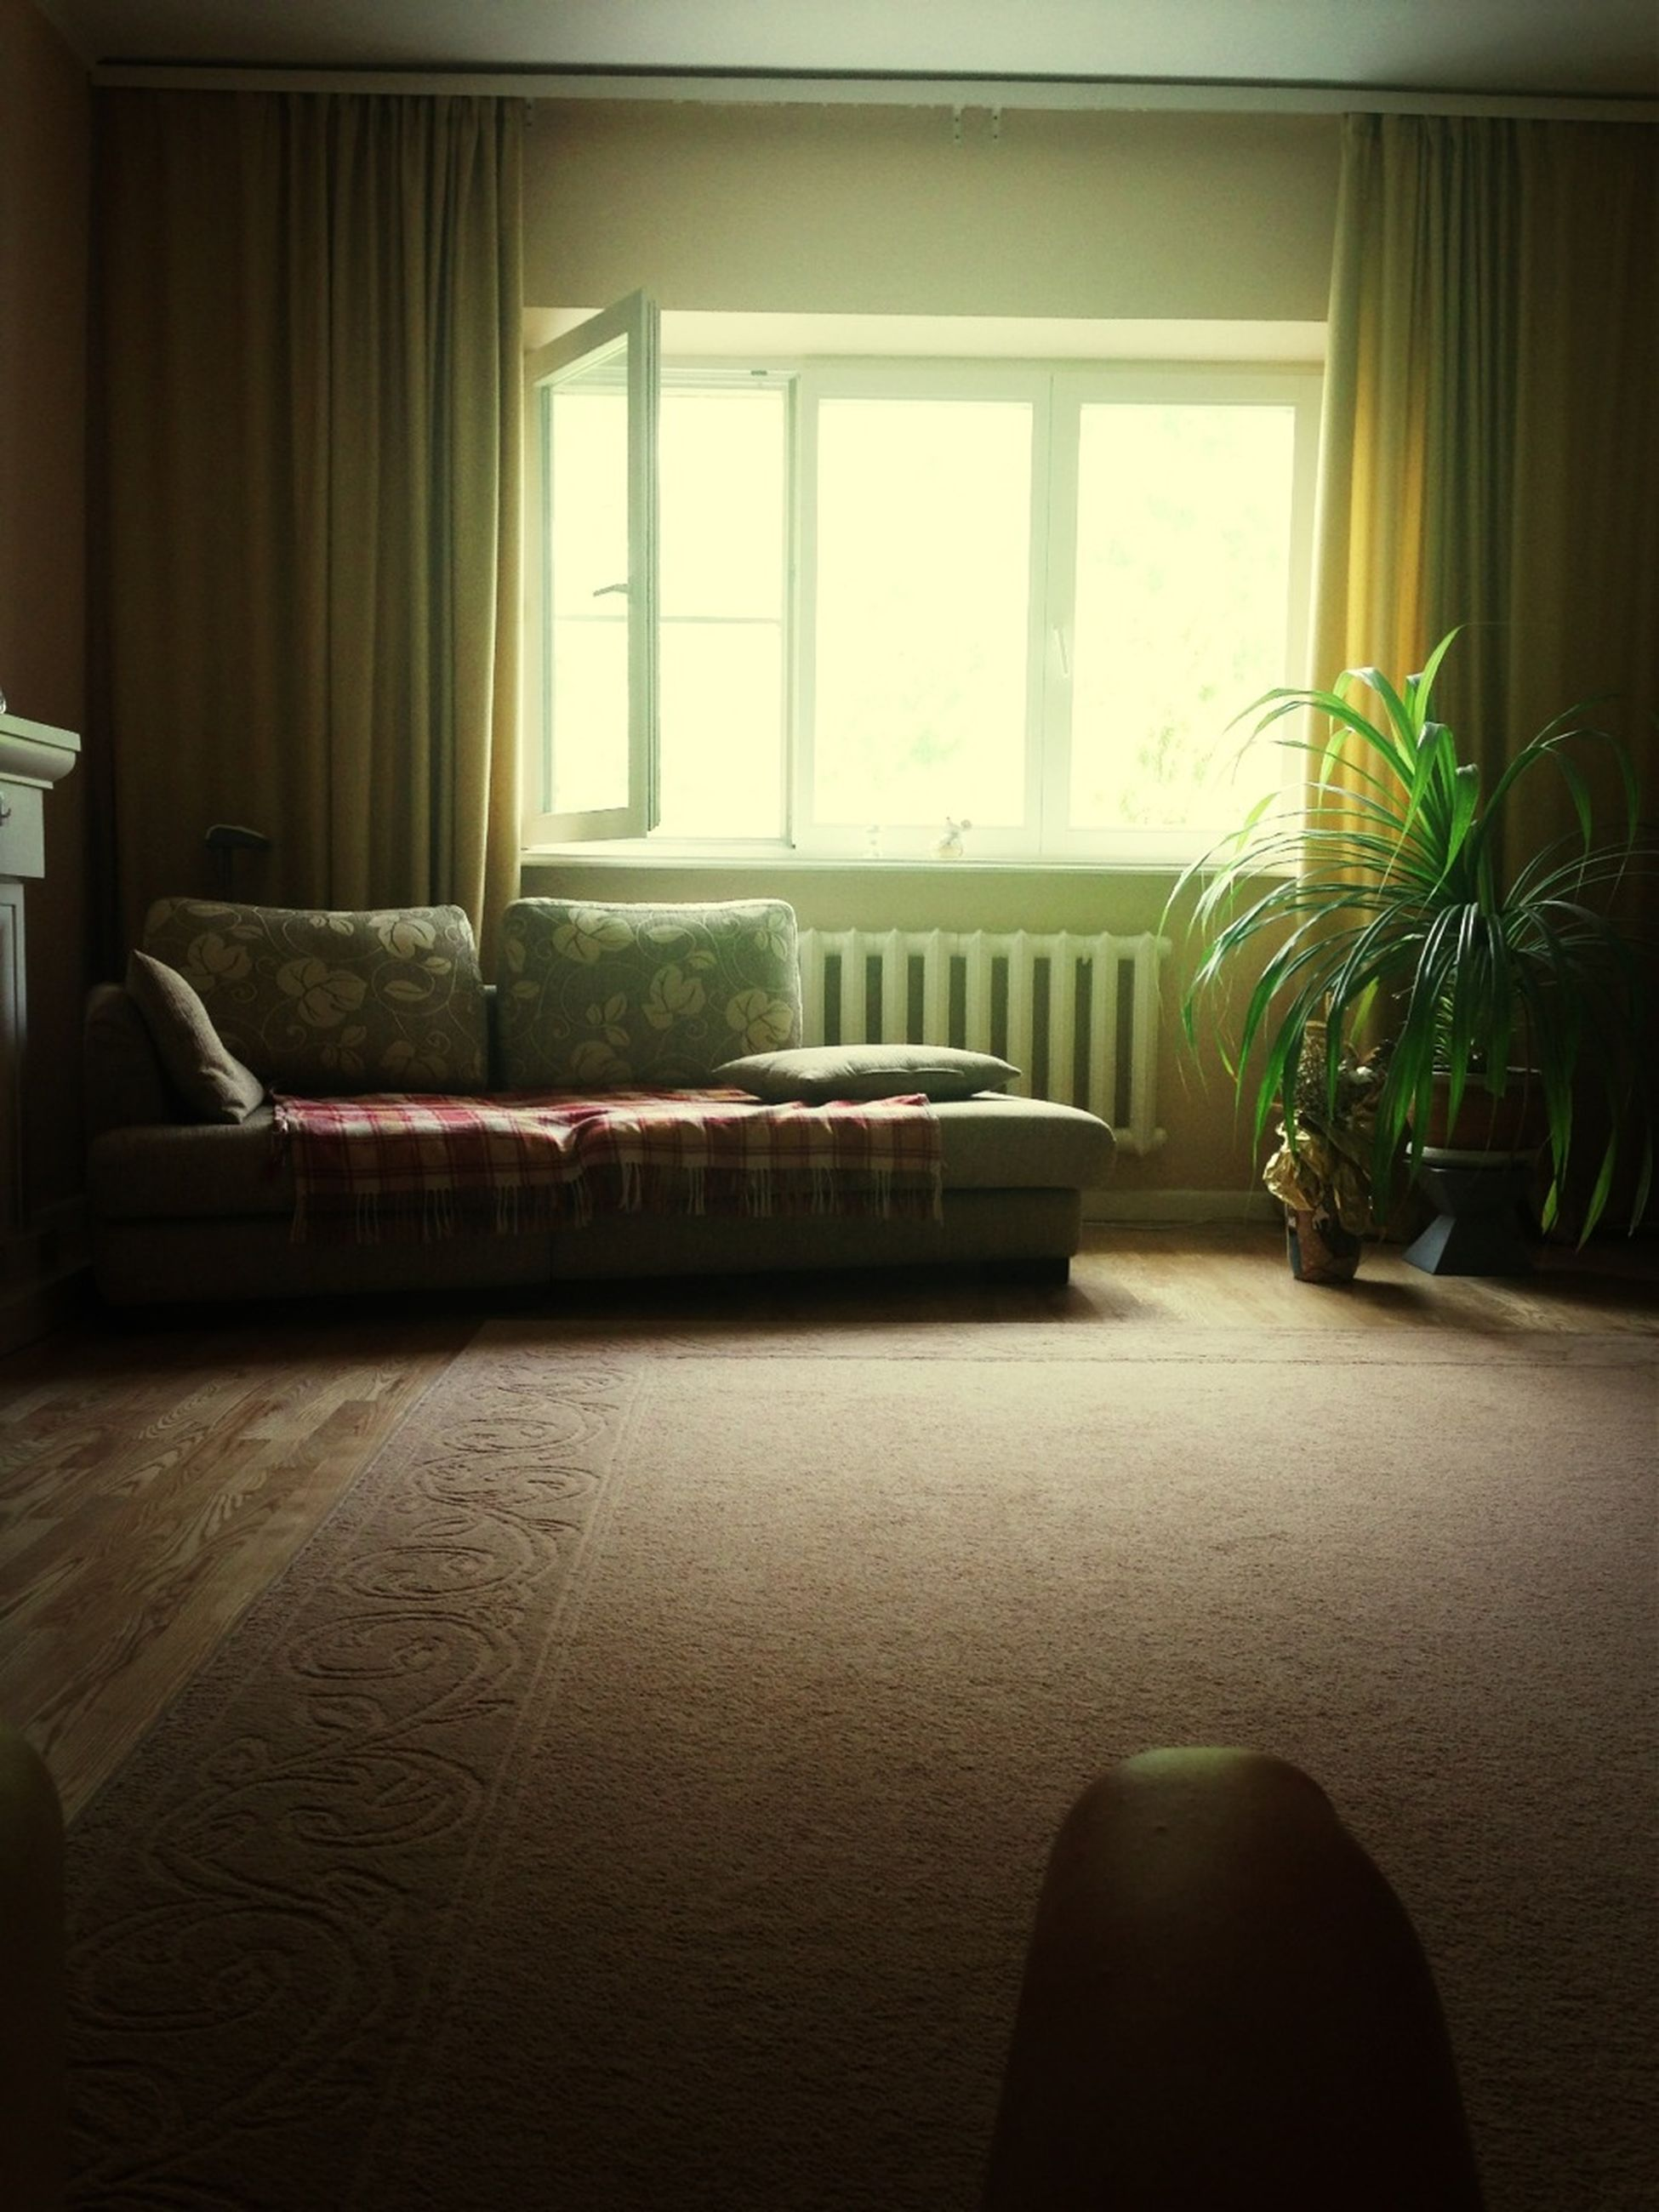 indoors, window, architecture, absence, home interior, built structure, empty, house, flooring, potted plant, table, sunlight, chair, no people, glass - material, floor, day, door, reflection, transparent